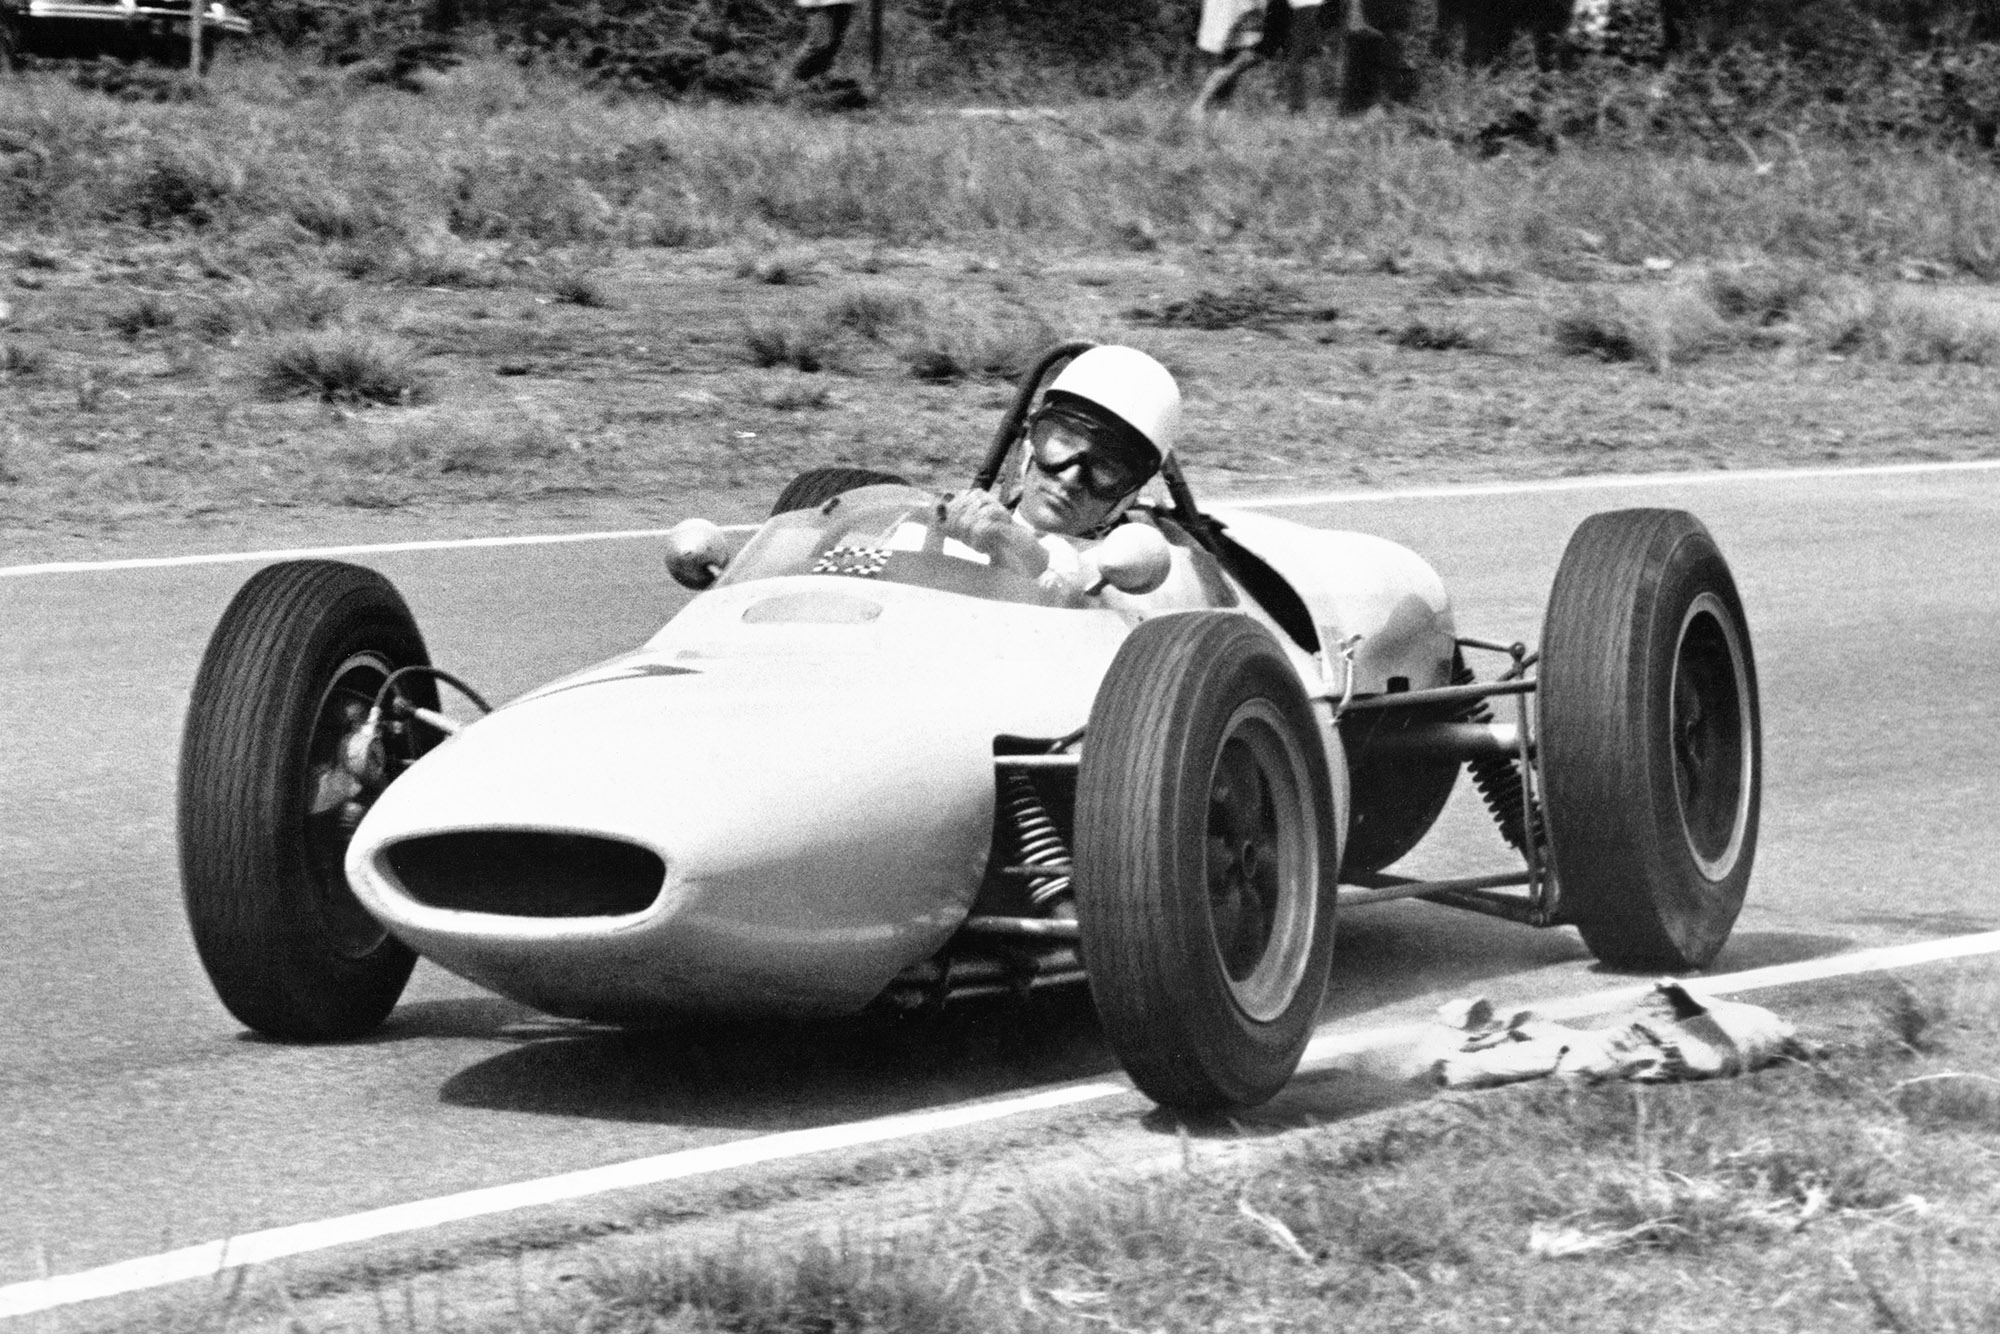 Strilinmg Moss at the 1961 South African Grand Prix